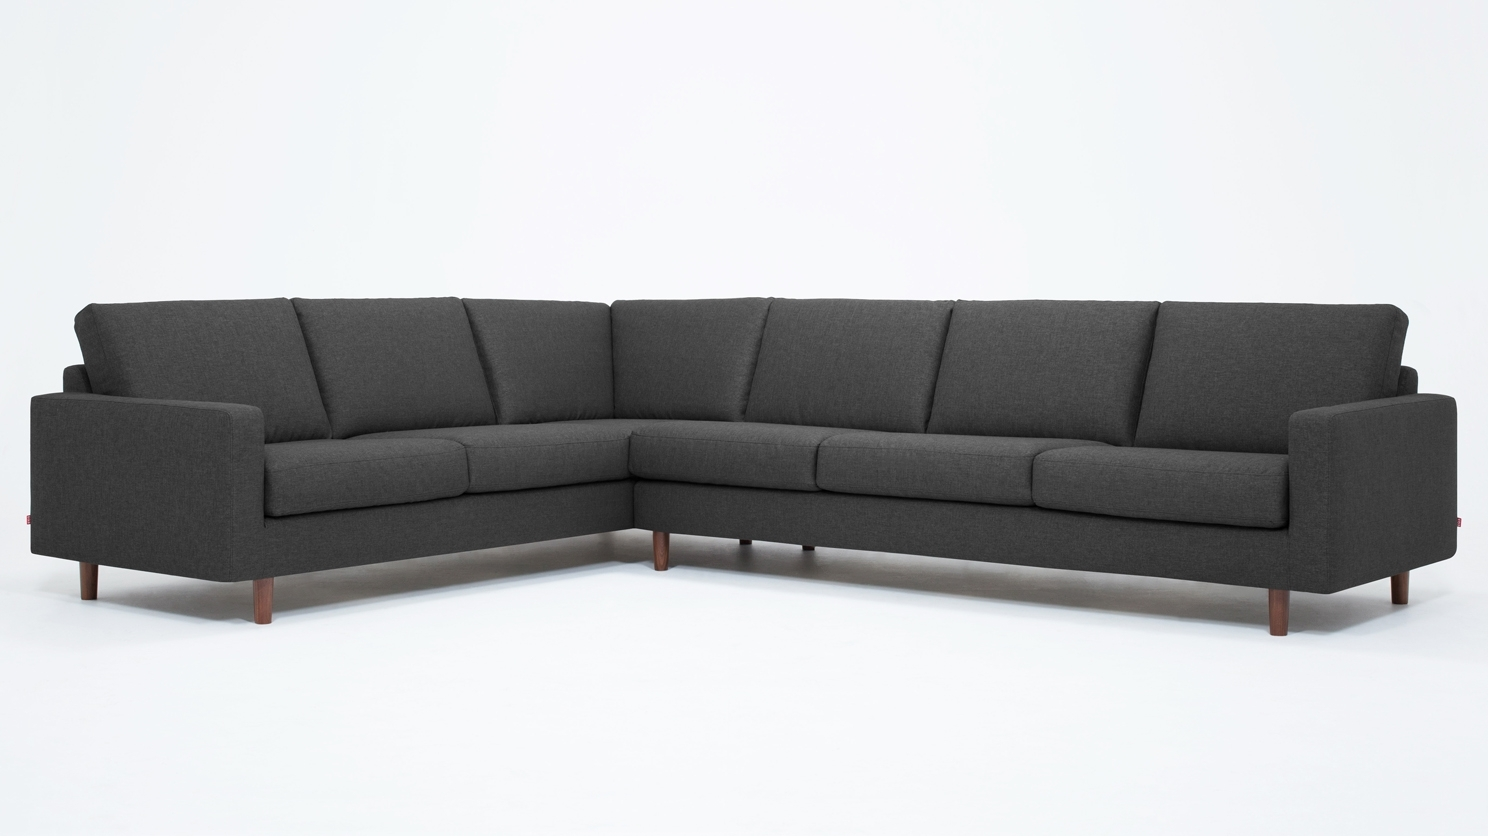 Eq3 | Oskar 2 Piece Sectional Sofa – Fabric With Regard To Eq3 Sectional Sofas (View 6 of 10)